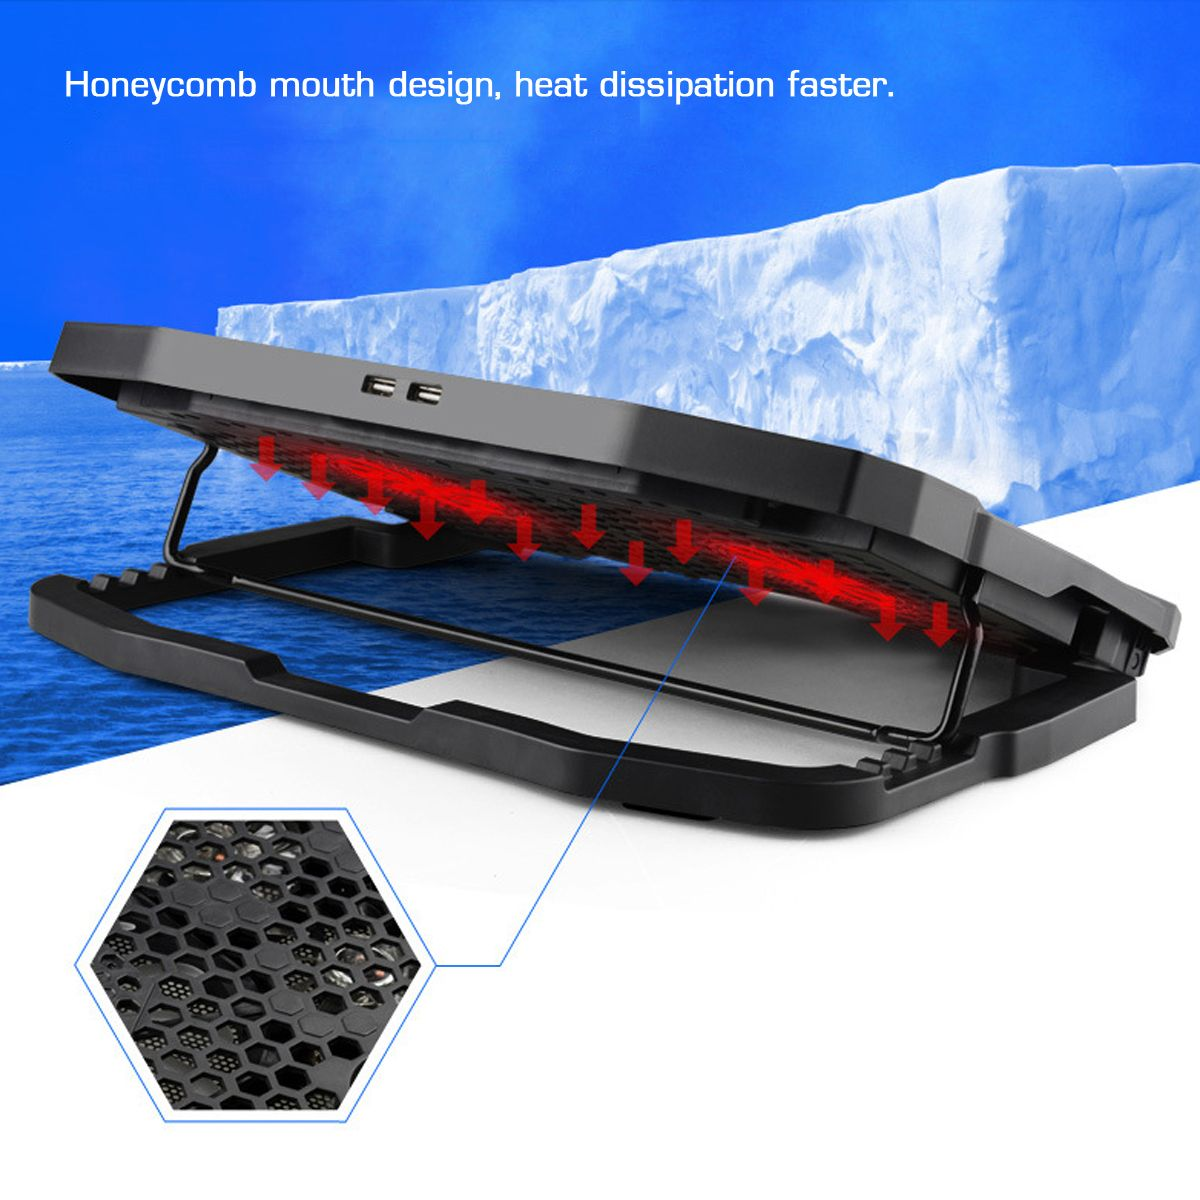 Bakeey Adjustable Speed Laptop Stand Laptop Cooler Heat